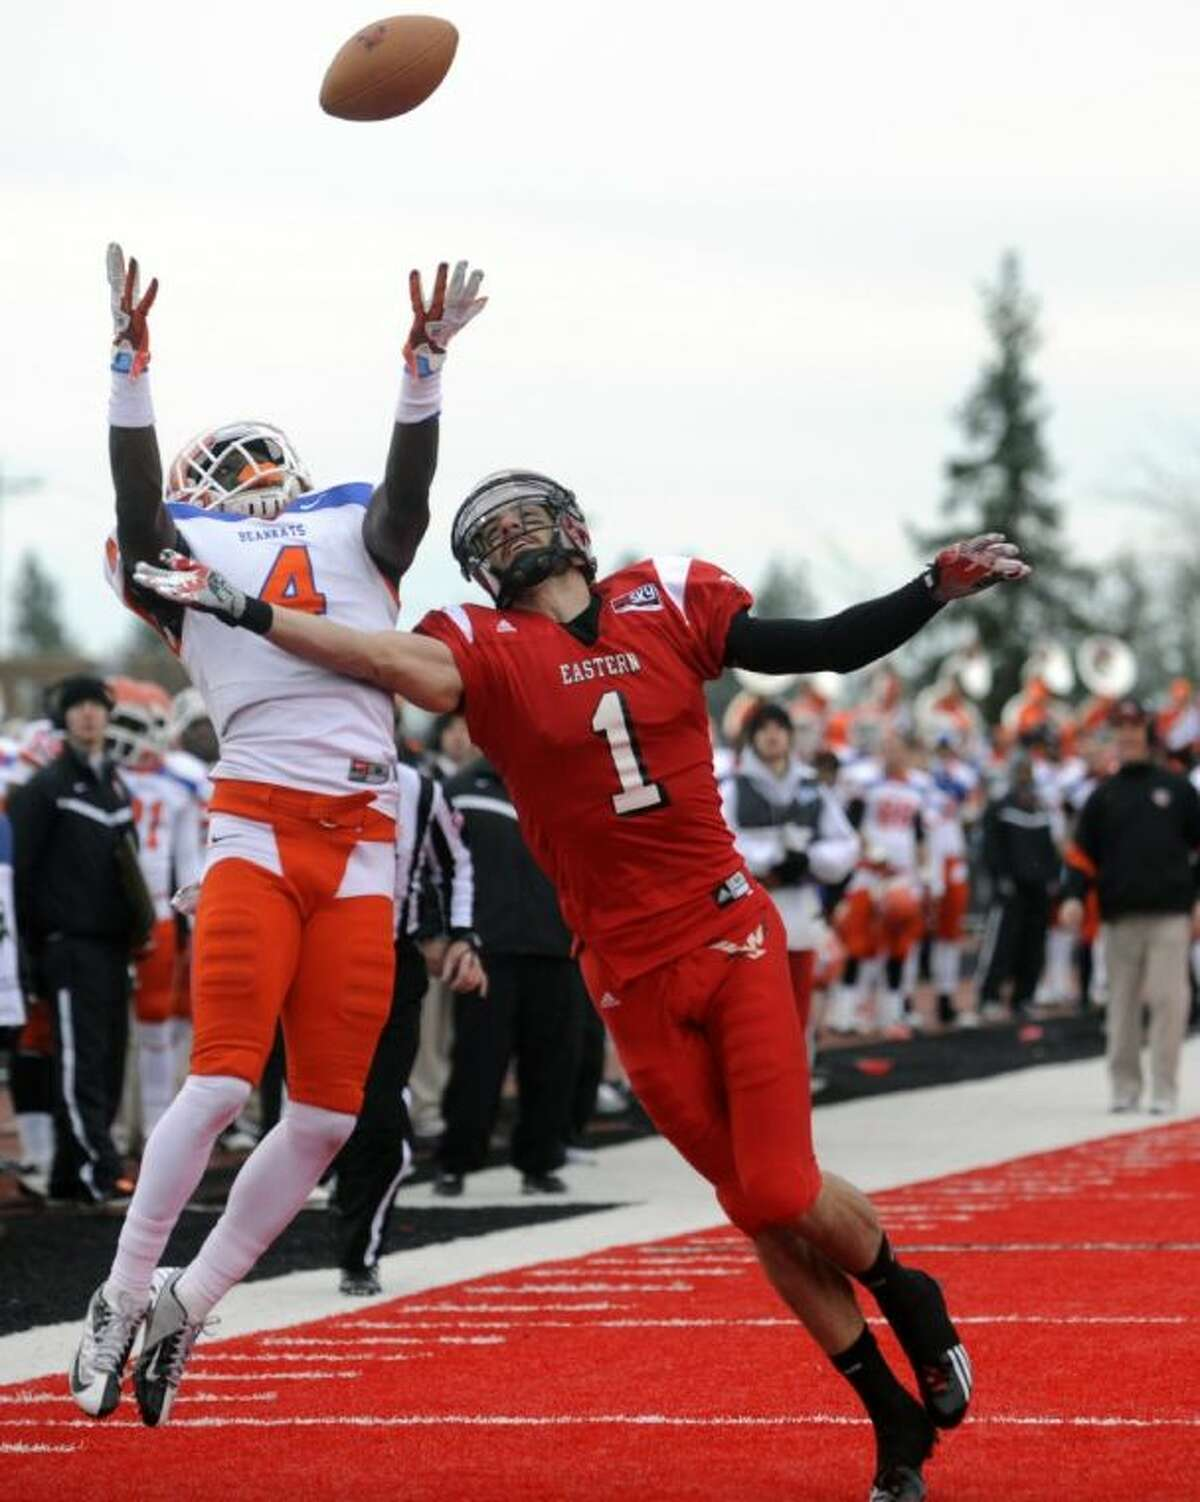 Sam Houston State cornerback Bookie Sneed breaks up a pass for Eastern Washington receiver Brandon Kaufman during the first half of an FCS semifinal playoff game on Dec. 15, 2012, in Cheney, Wash. The Bearkats won, 45-42.